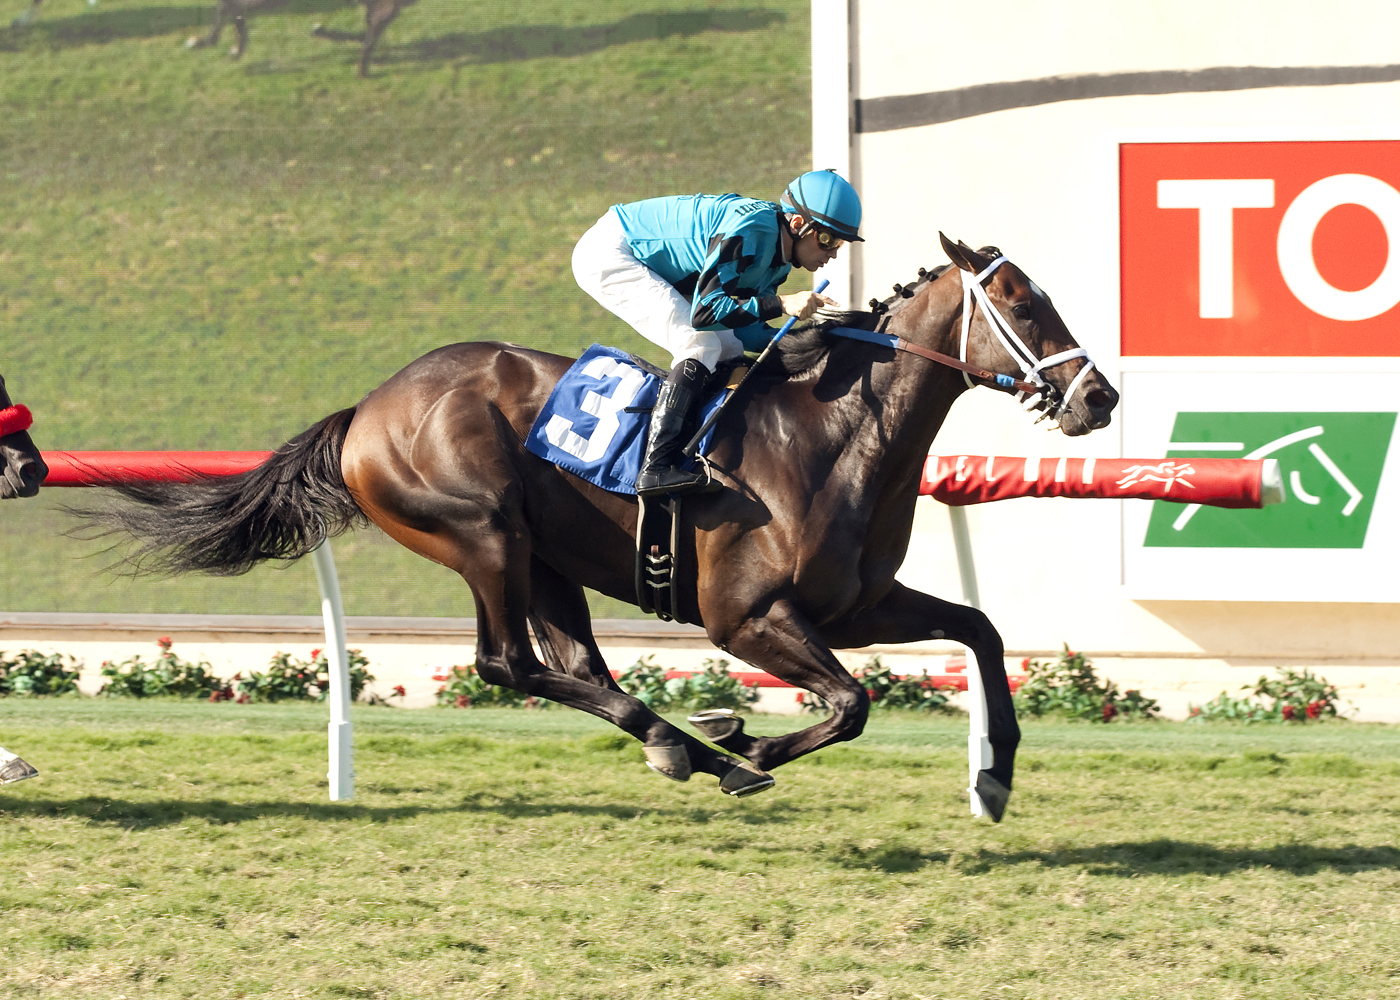 In this image provided by Benoit Photo, Hollywood Don, with Brice Blanc aboard, wins the $100,000 Del Mar Juvenile Turf horse race, Saturday, Sept. 5, 2015, at Del Mar Thoroughbred Club in Del Mar, Calif. (Benoit Photo via AP)  BENOIT PHOTO